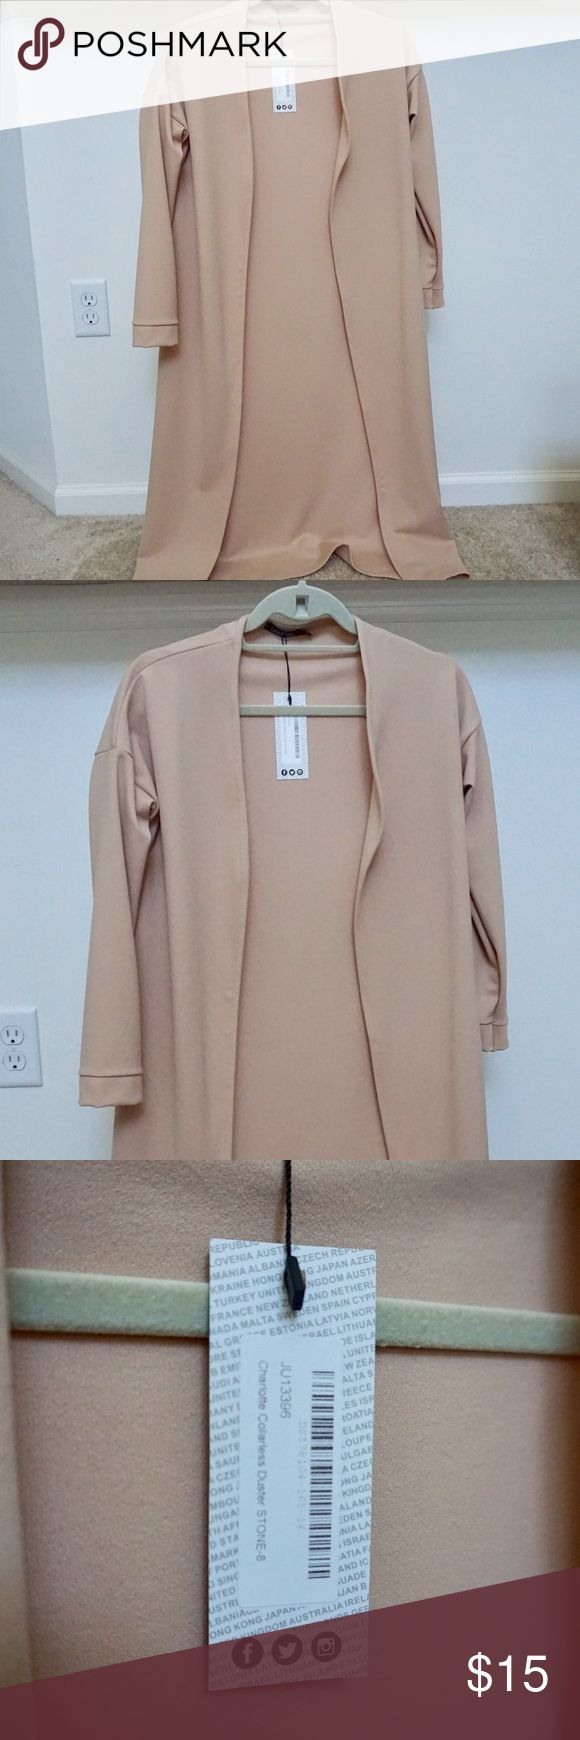 Boohoo Duster Collarless Cardigan Boohoo draped collarless cardigan in nude / Stretchy material / New with tags Boohoo Sweaters Cardigans